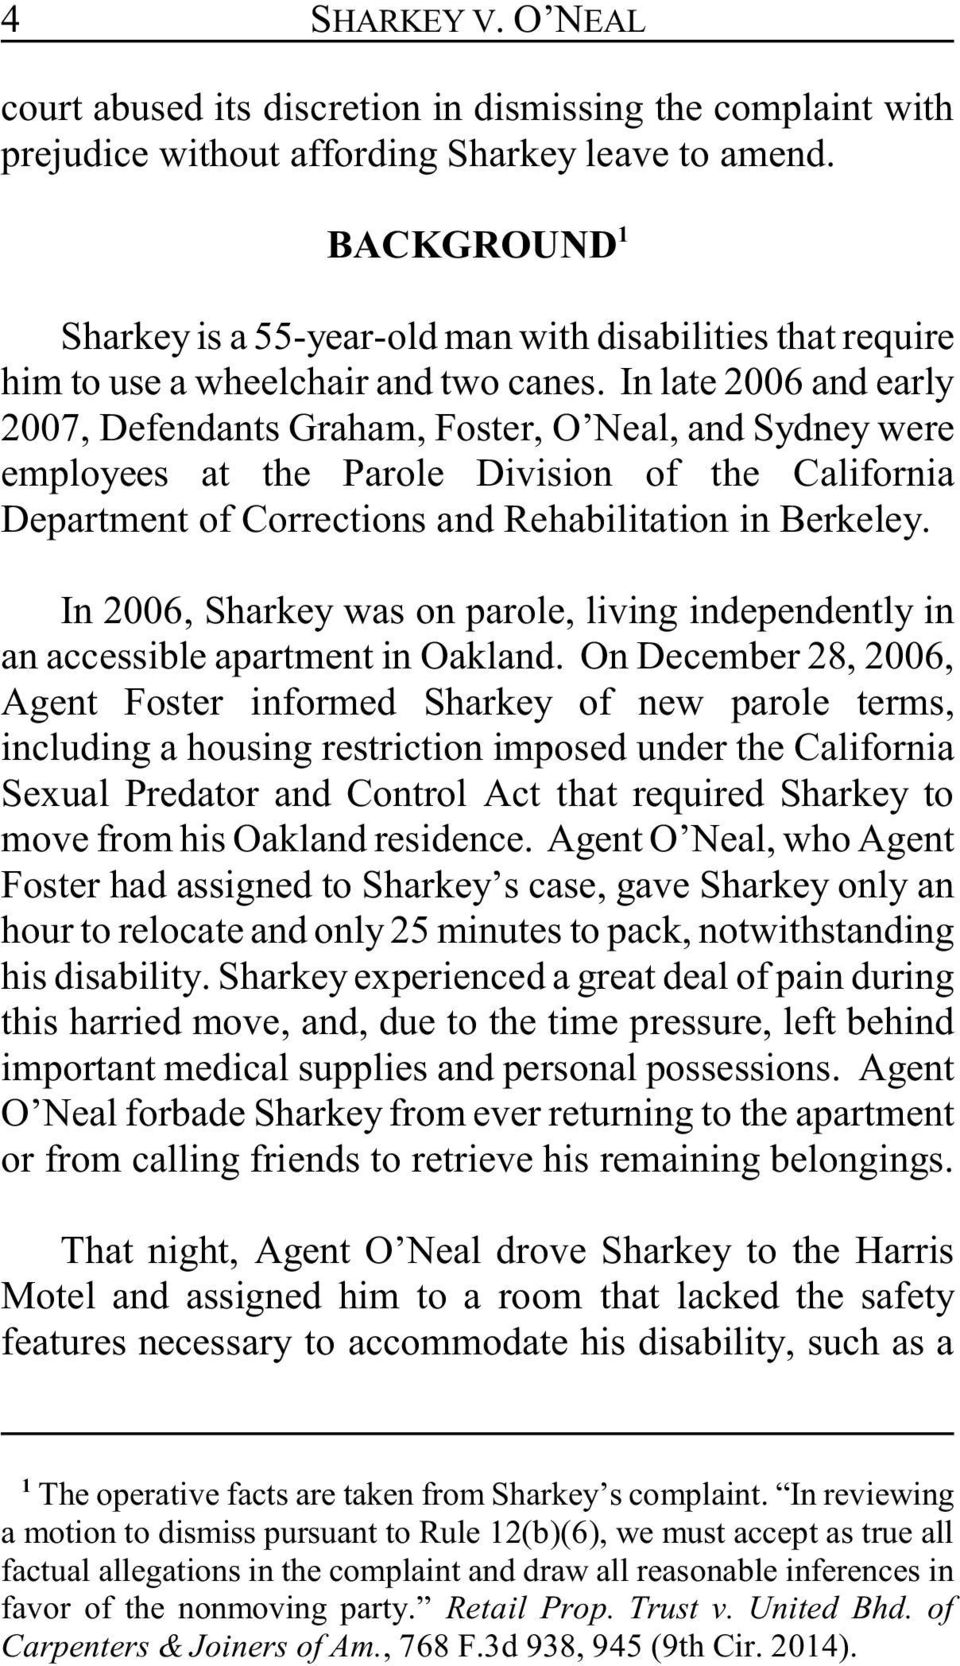 In late 2006 and early 2007, Defendants Graham, Foster, O Neal, and Sydney were employees at the Parole Division of the California Department of Corrections and Rehabilitation in Berkeley.